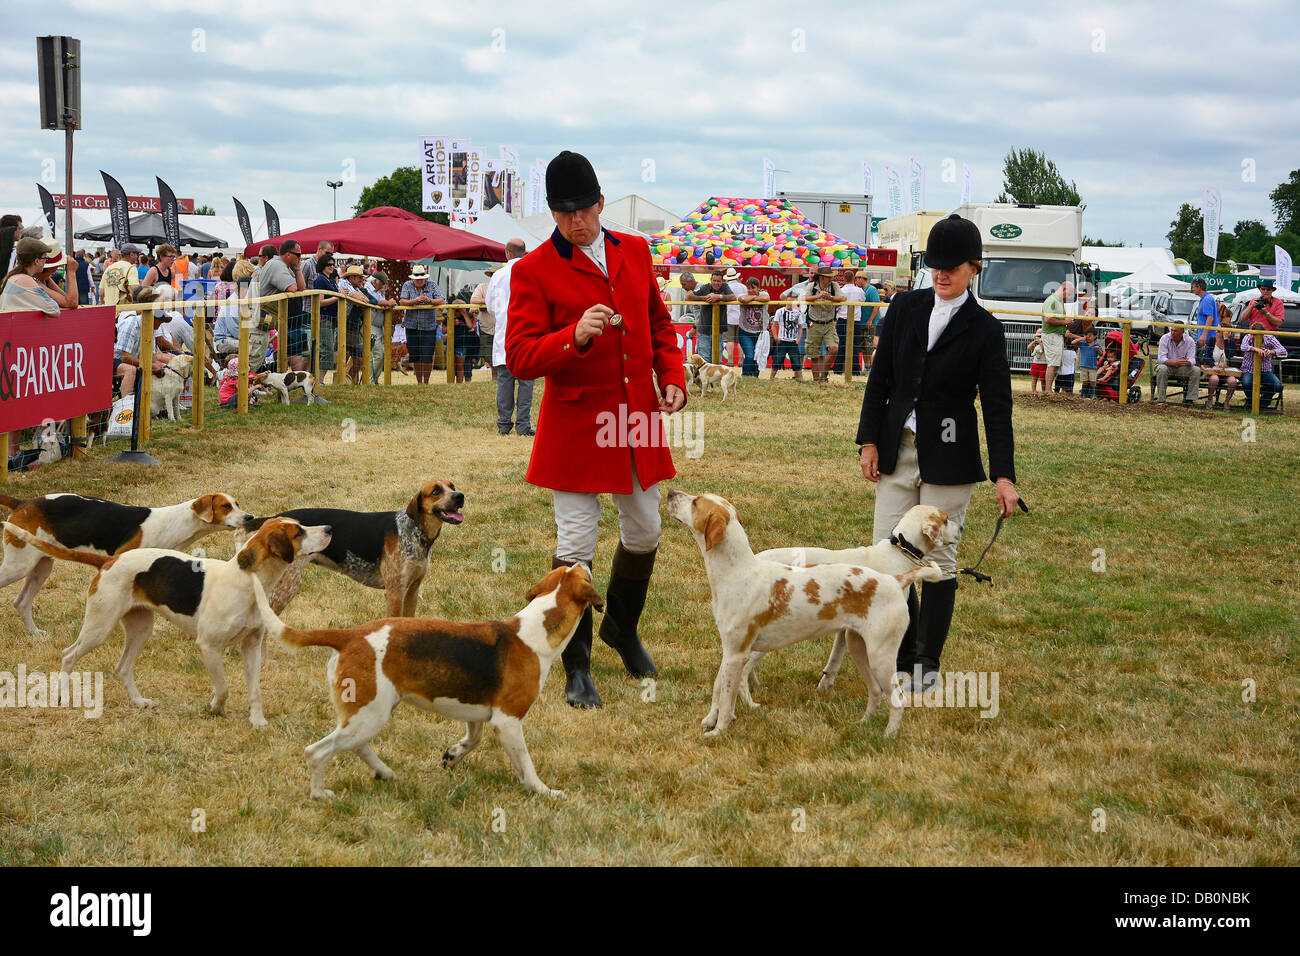 Alcester, Warwickshire. 21st July, 2013. Hounds in the ring at at the CLA Game Fair, Ragley Hall, Alcester, Warwickshire, Stock Photo